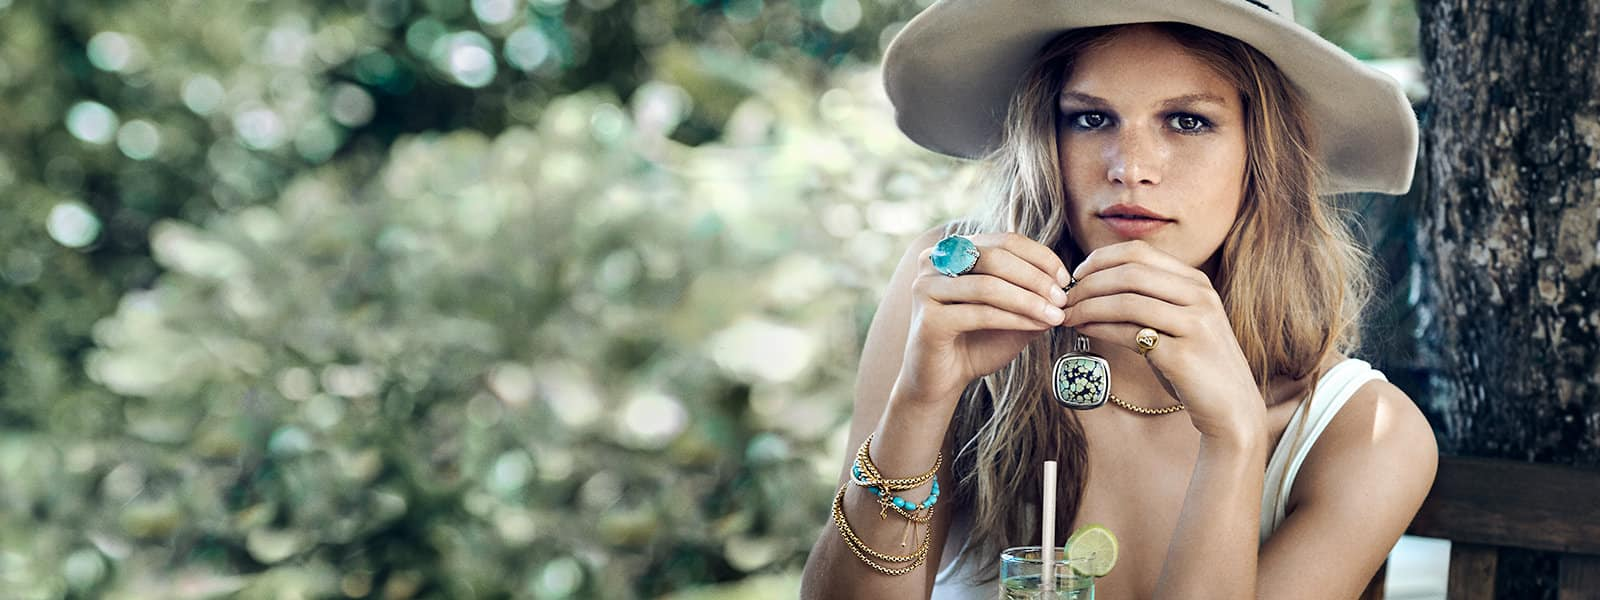 Model Anna Ewers wearing David Yurman Continuance® and Pinky Ring jewelry in sterling silver or 18K white gold with or without South Sea pearls and pavé diamonds in front of the shoreline.